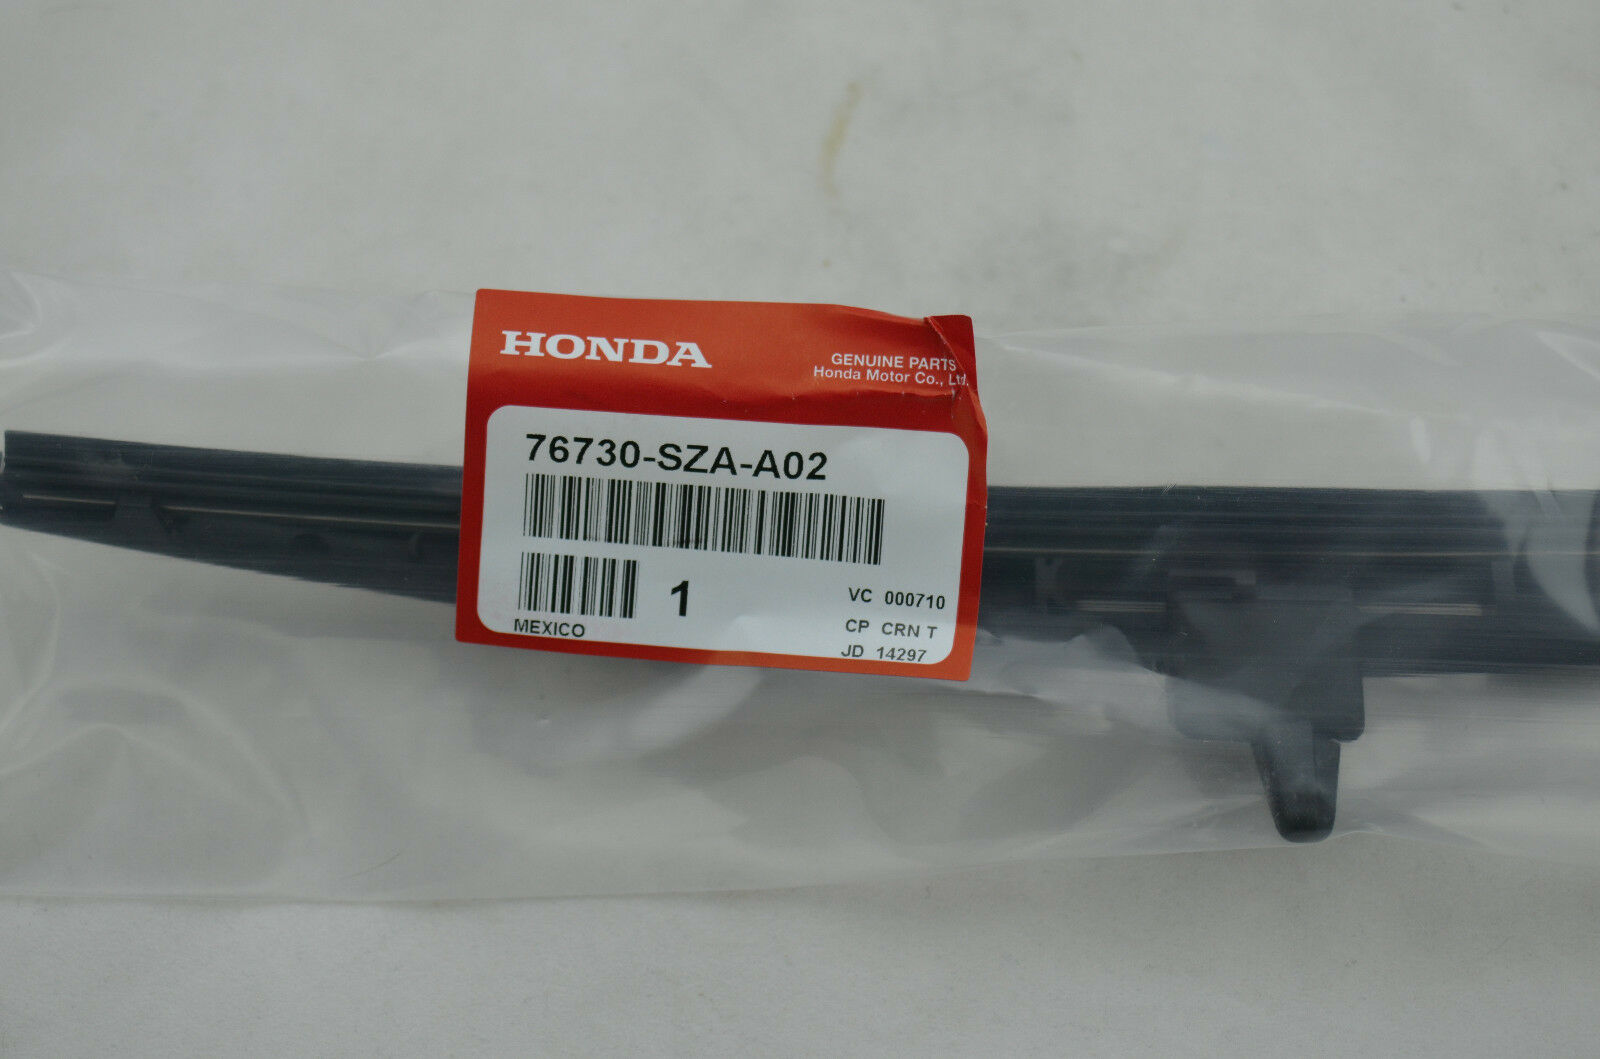 Genuine 76730-SZA-A02 Replacement for Honda Pilot Rear Windshield ...